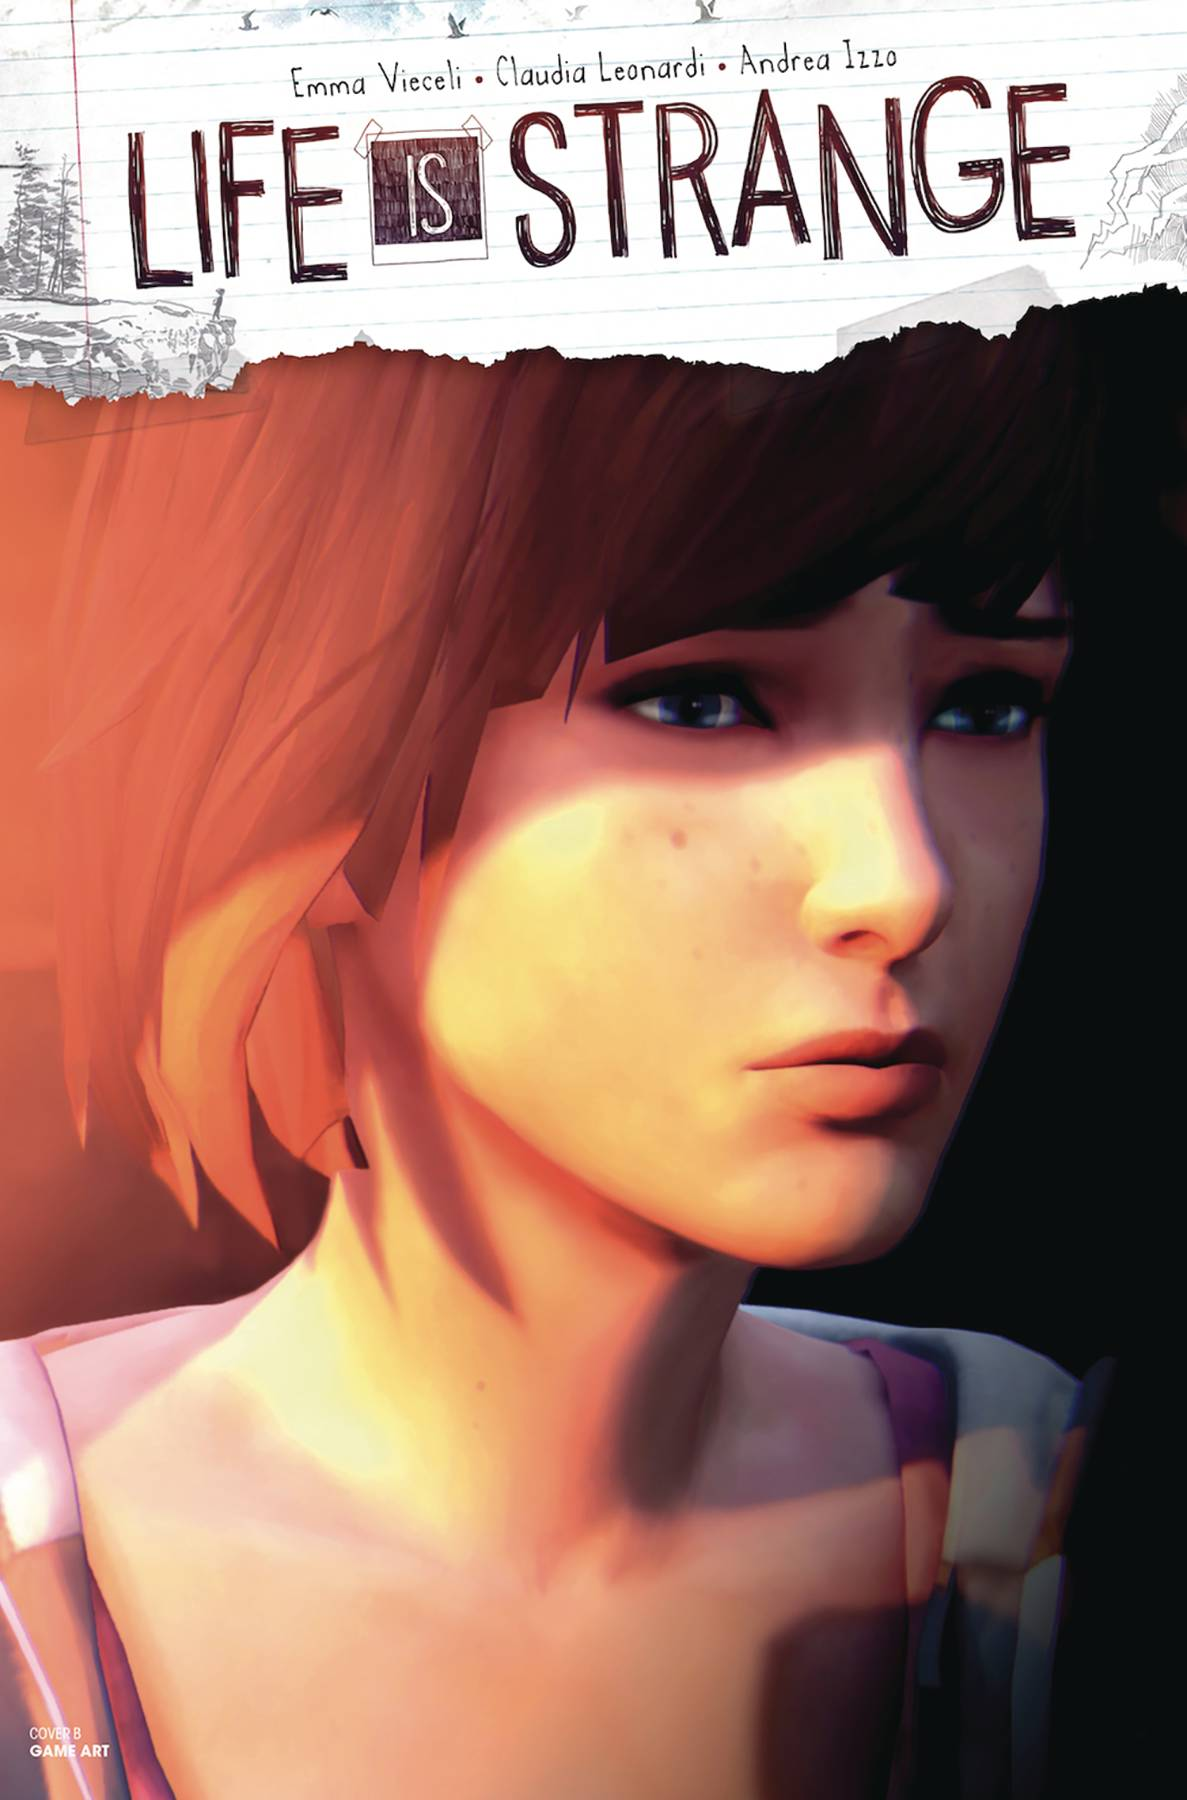 LIFE IS STRANGE 5 CVR B GAME ART.jpg